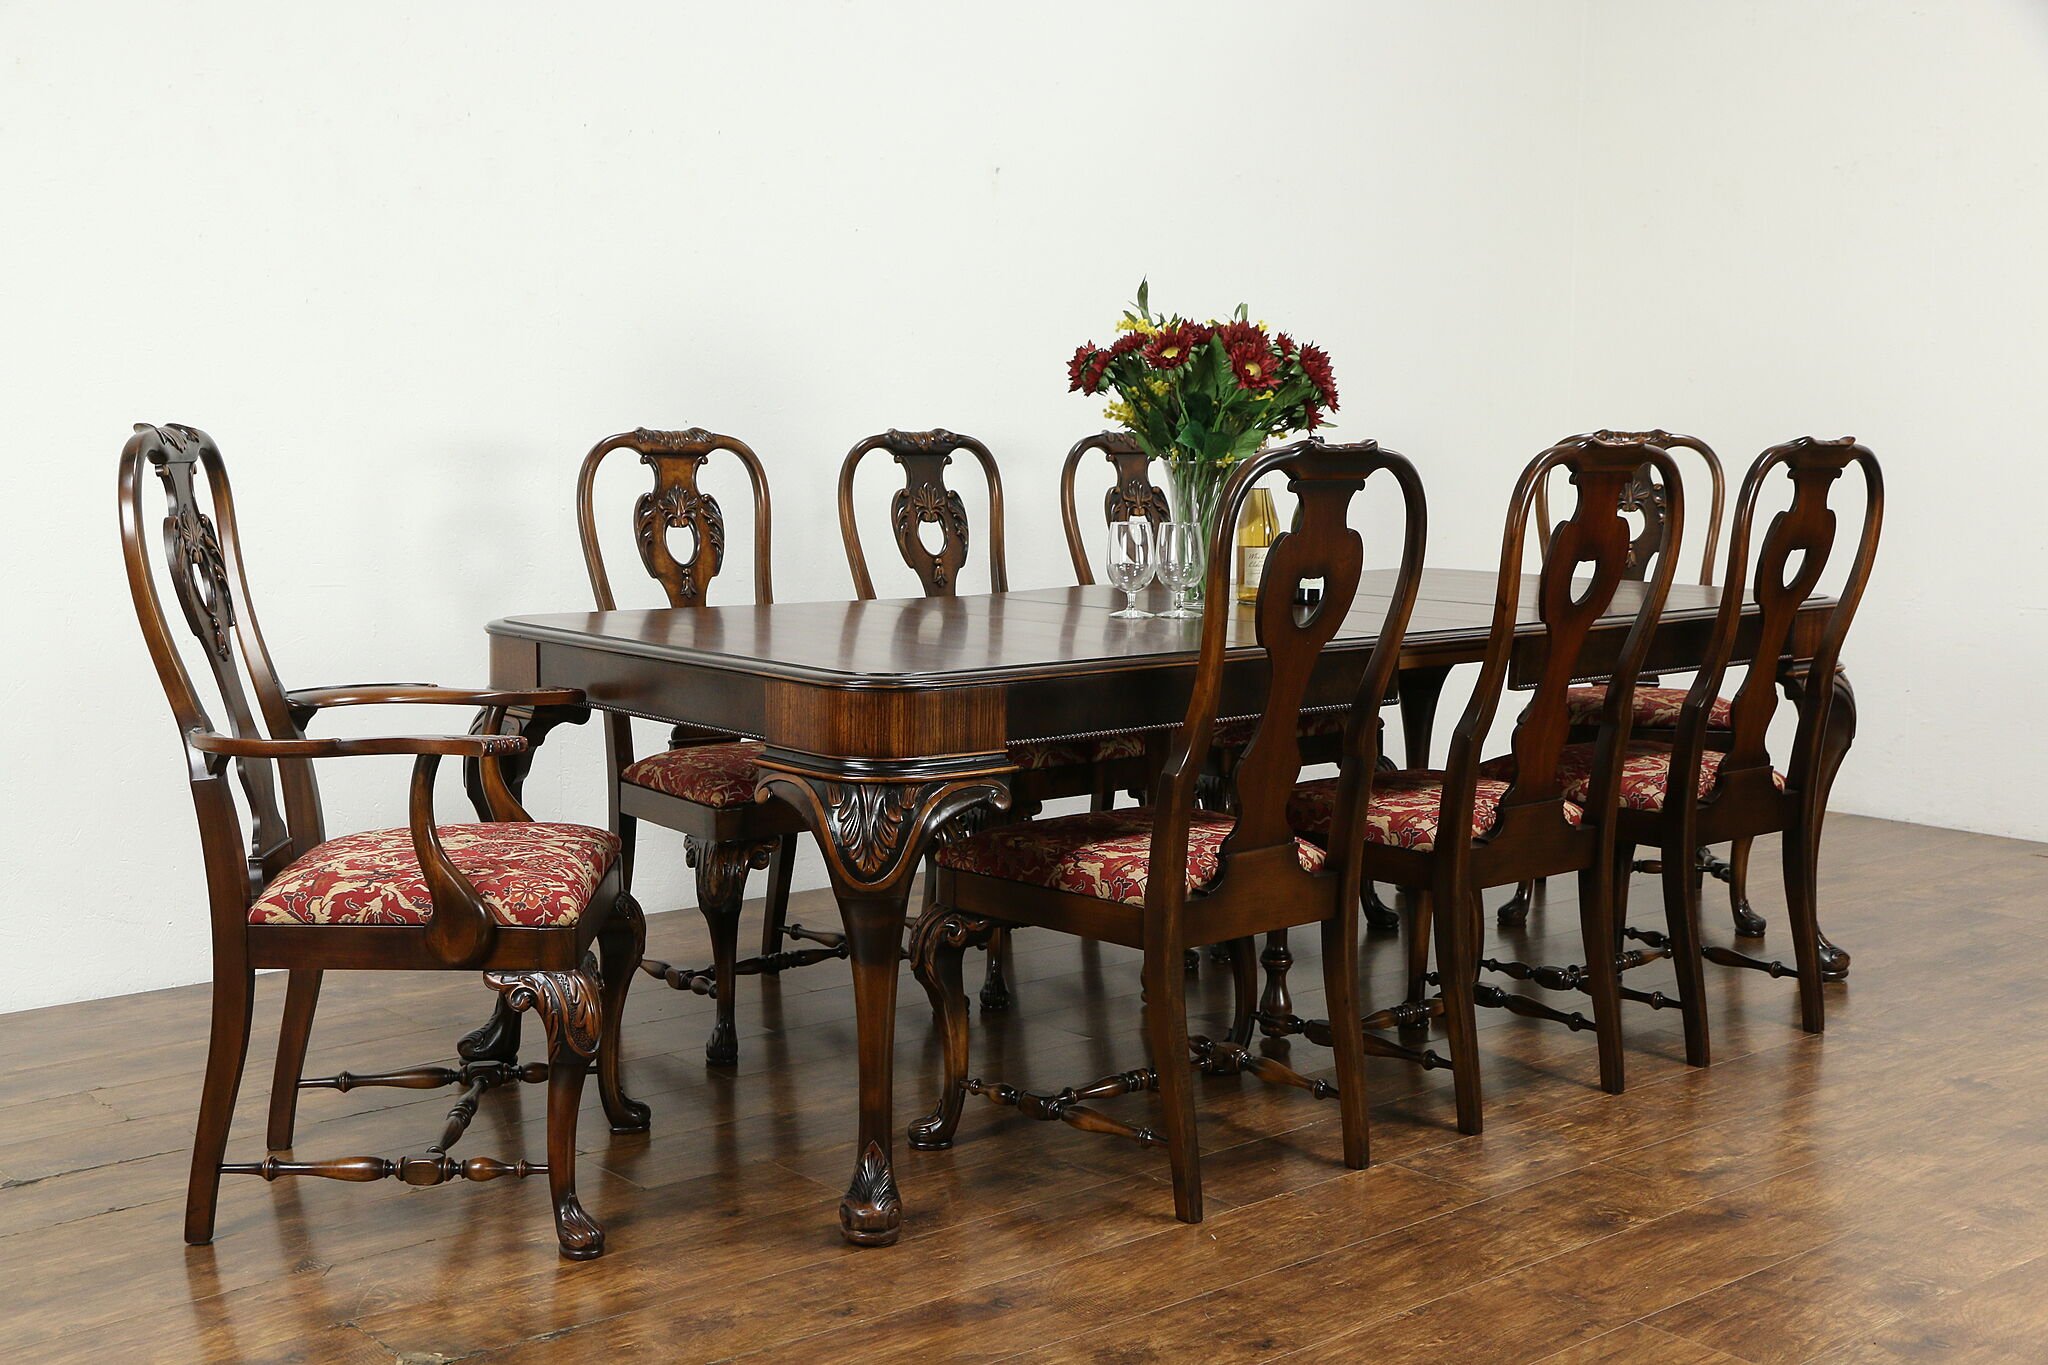 Sold Renaissance Antique Dining Set Table 3 Leaves 8 Chairs Berkey And Gay 34351 Harp Gallery Antiques Furniture